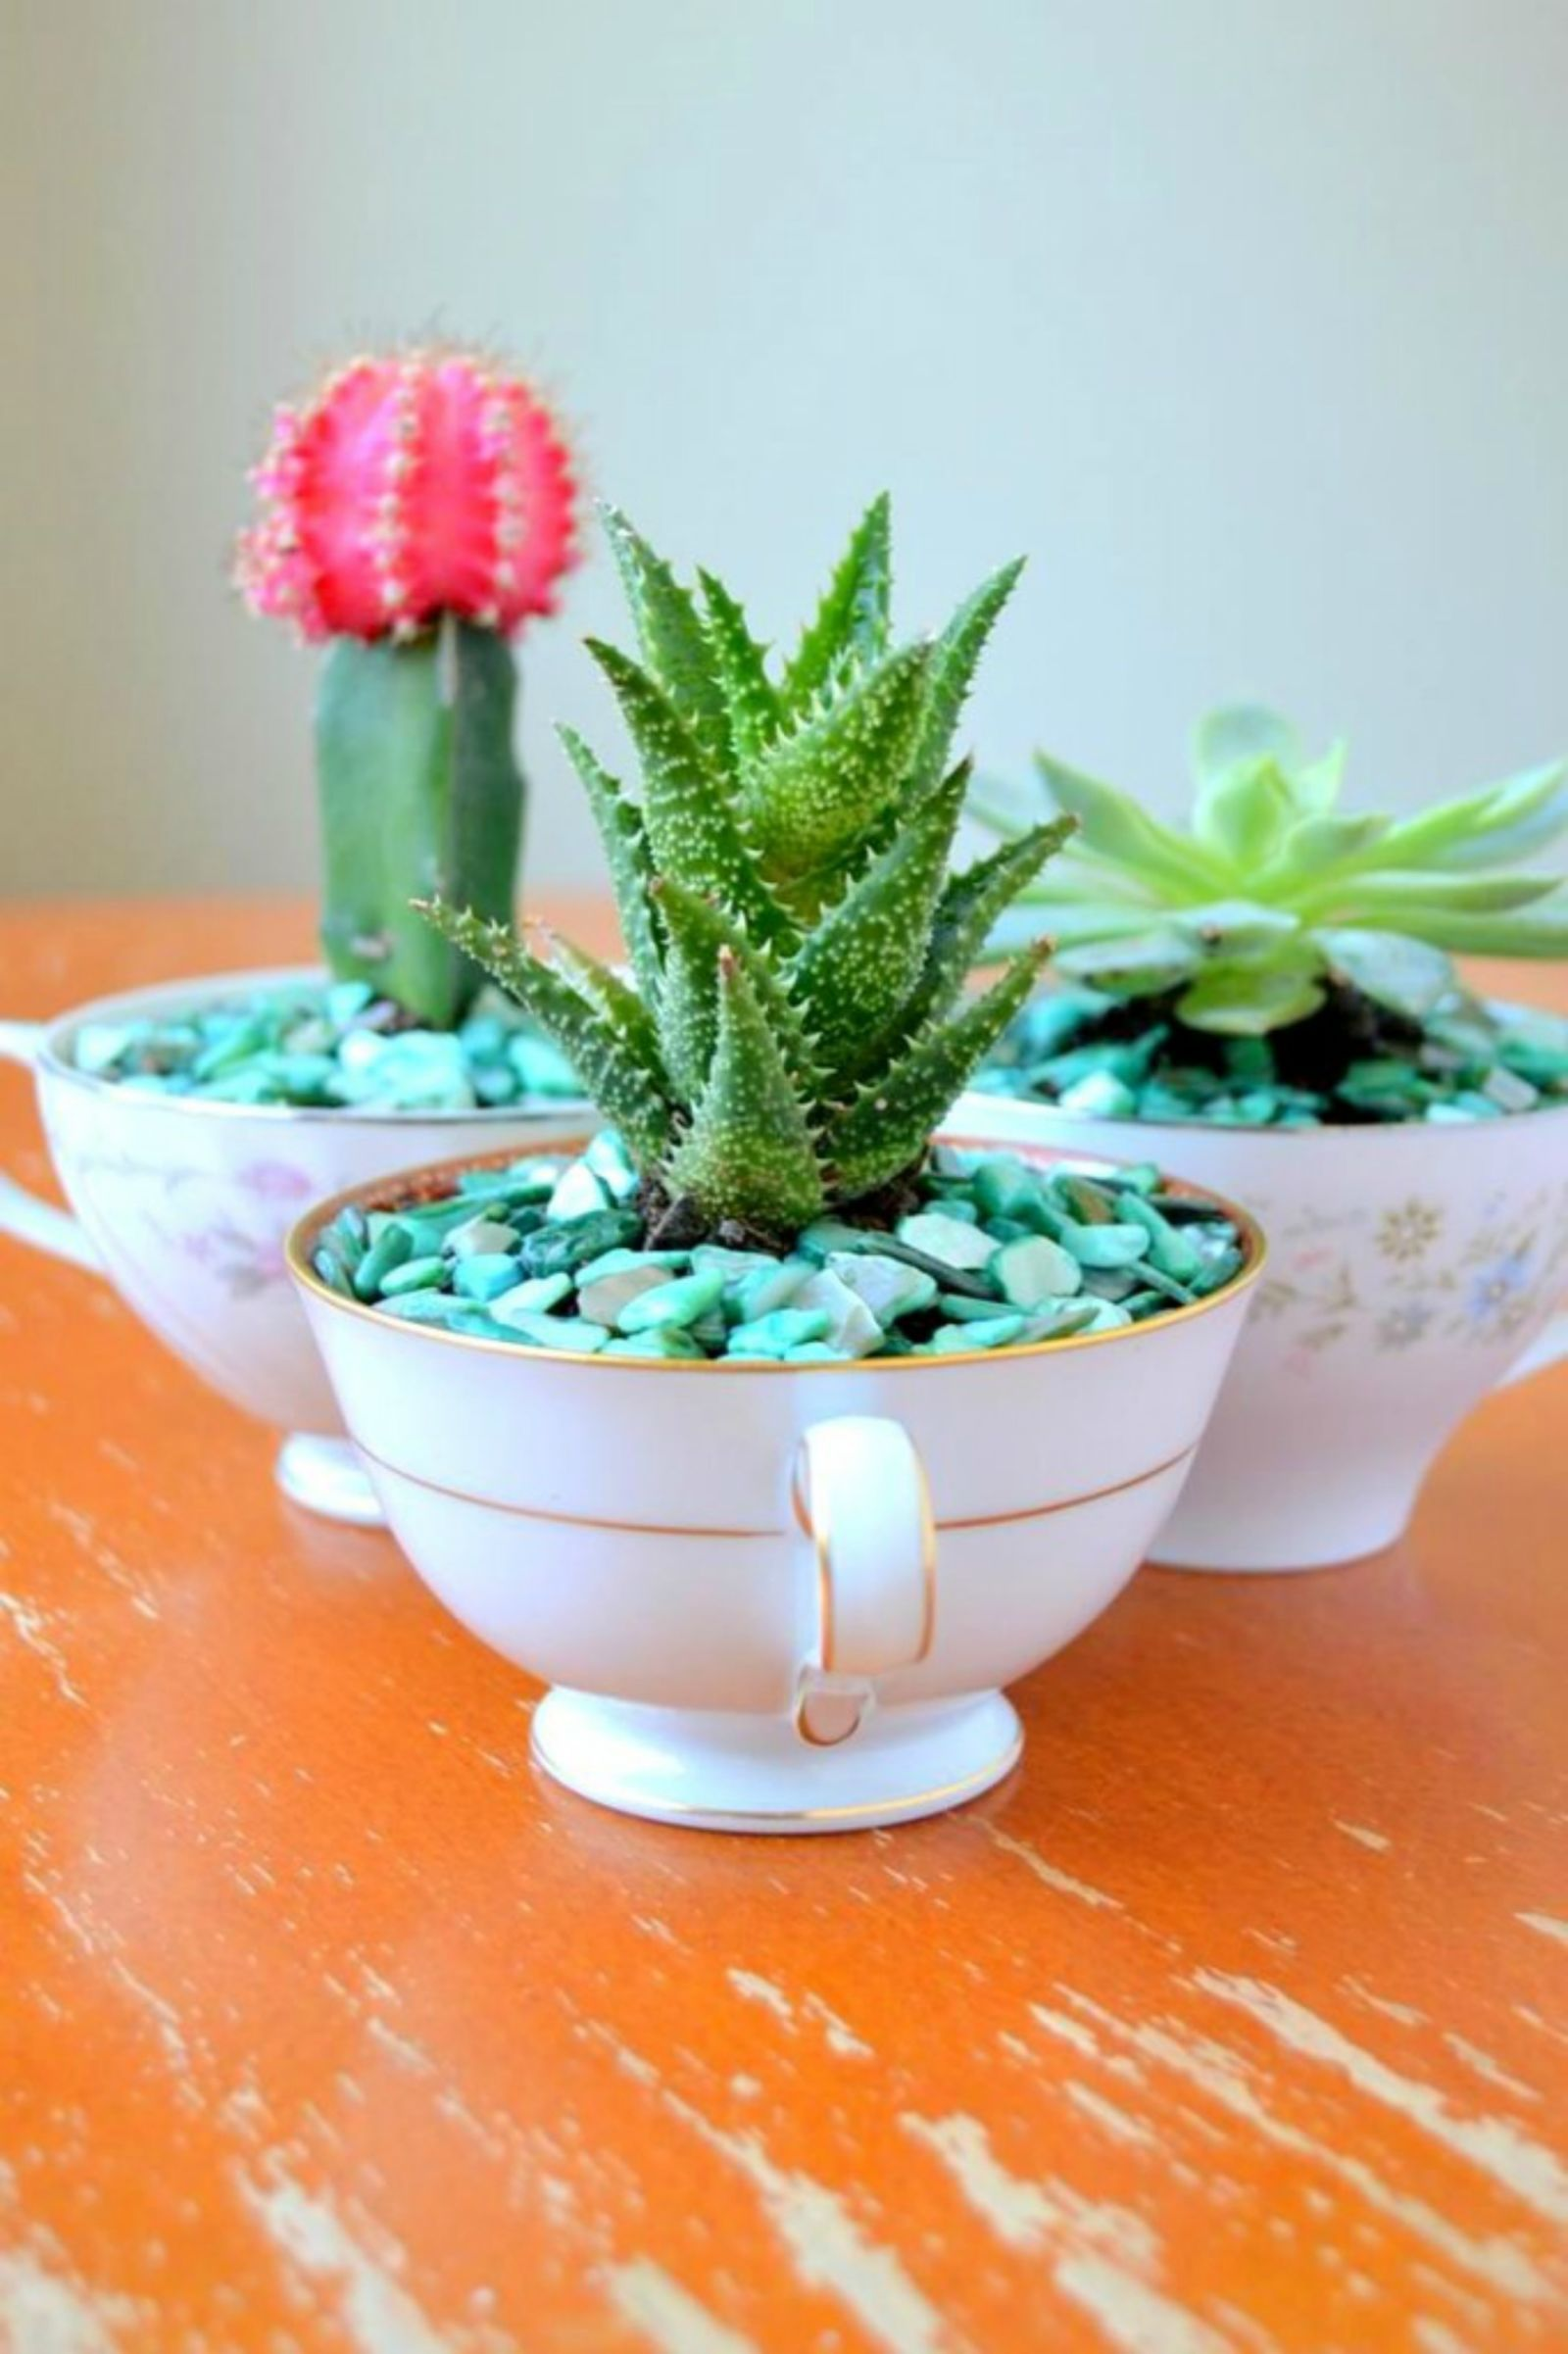 Unique diy home garden decor with a shoe planter and succulents - 8 Charming Teacup Gardens You Ll Want In Every Room Of Your House Diy Planterssucculent Planterssucculents Gardenindoor